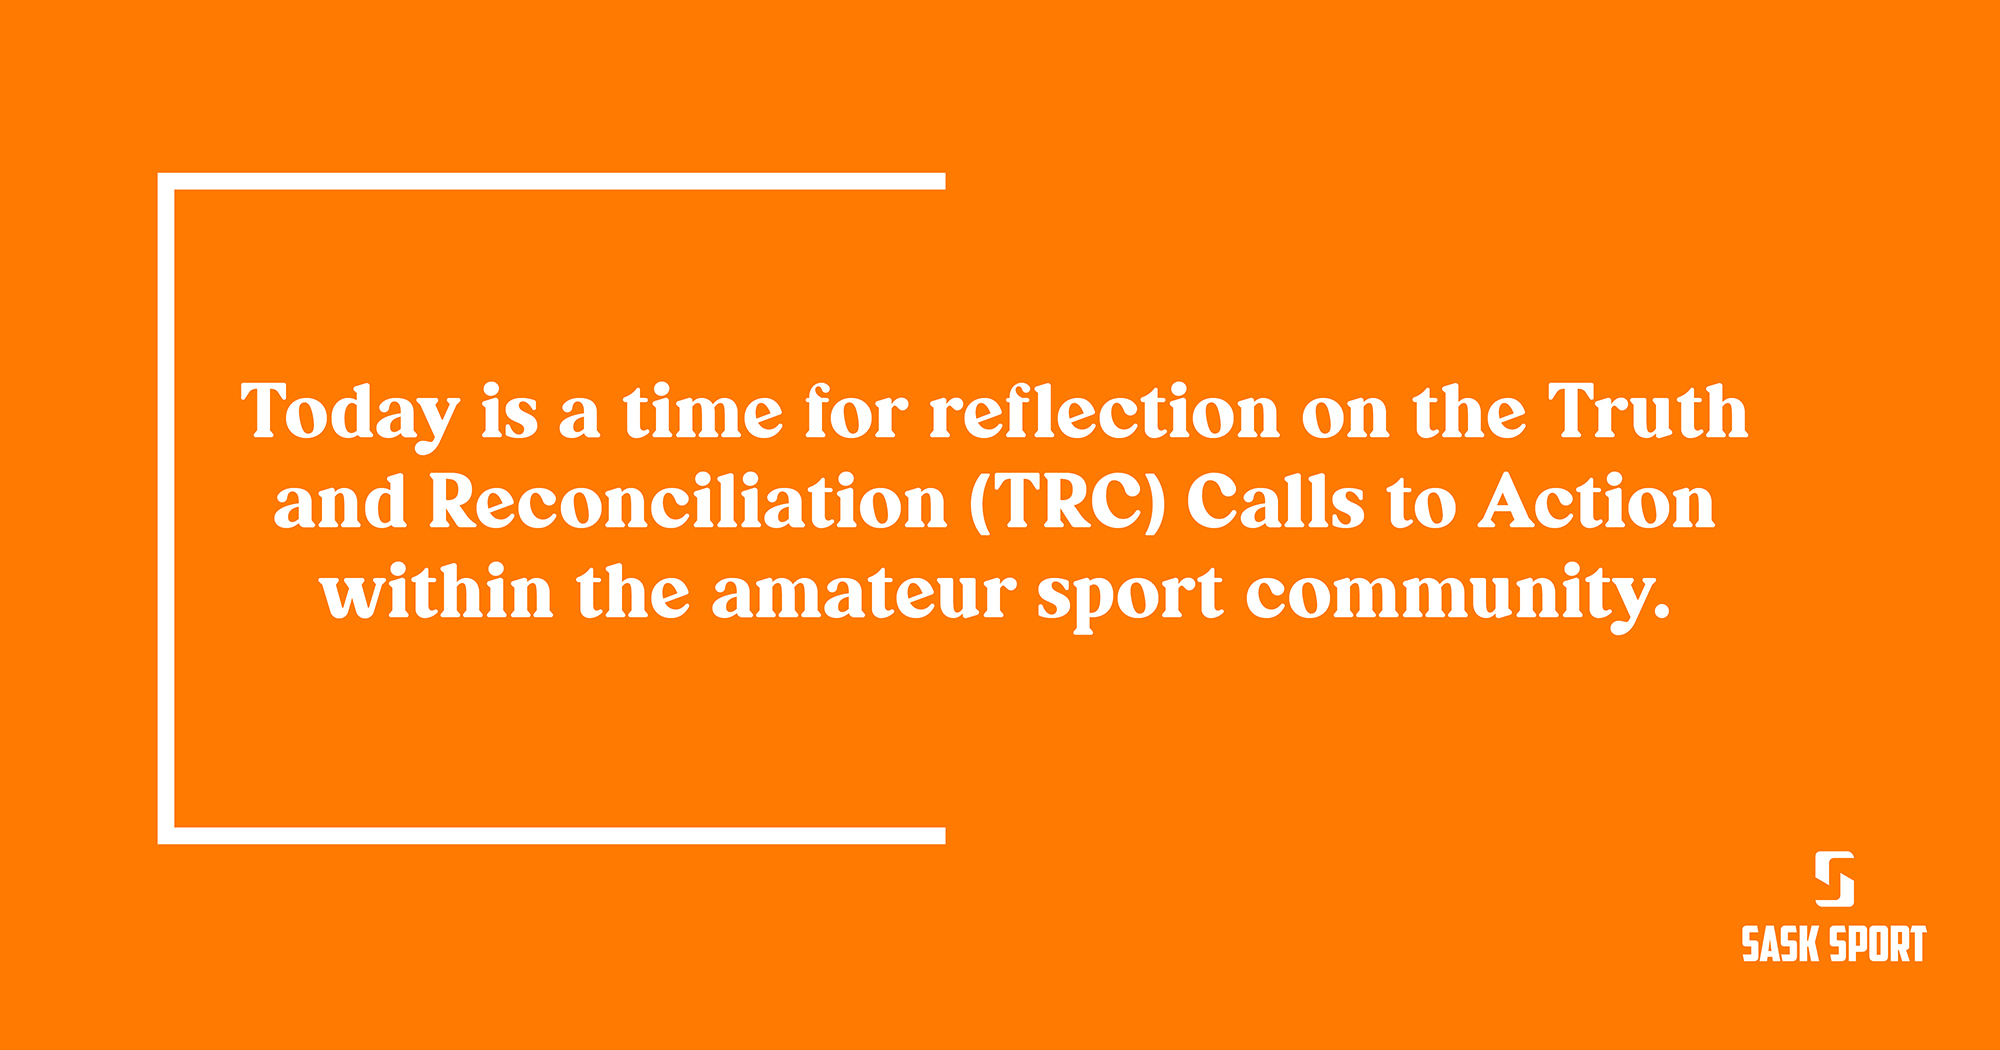 Reflection on the Truth and Reconciliation Calls to Action